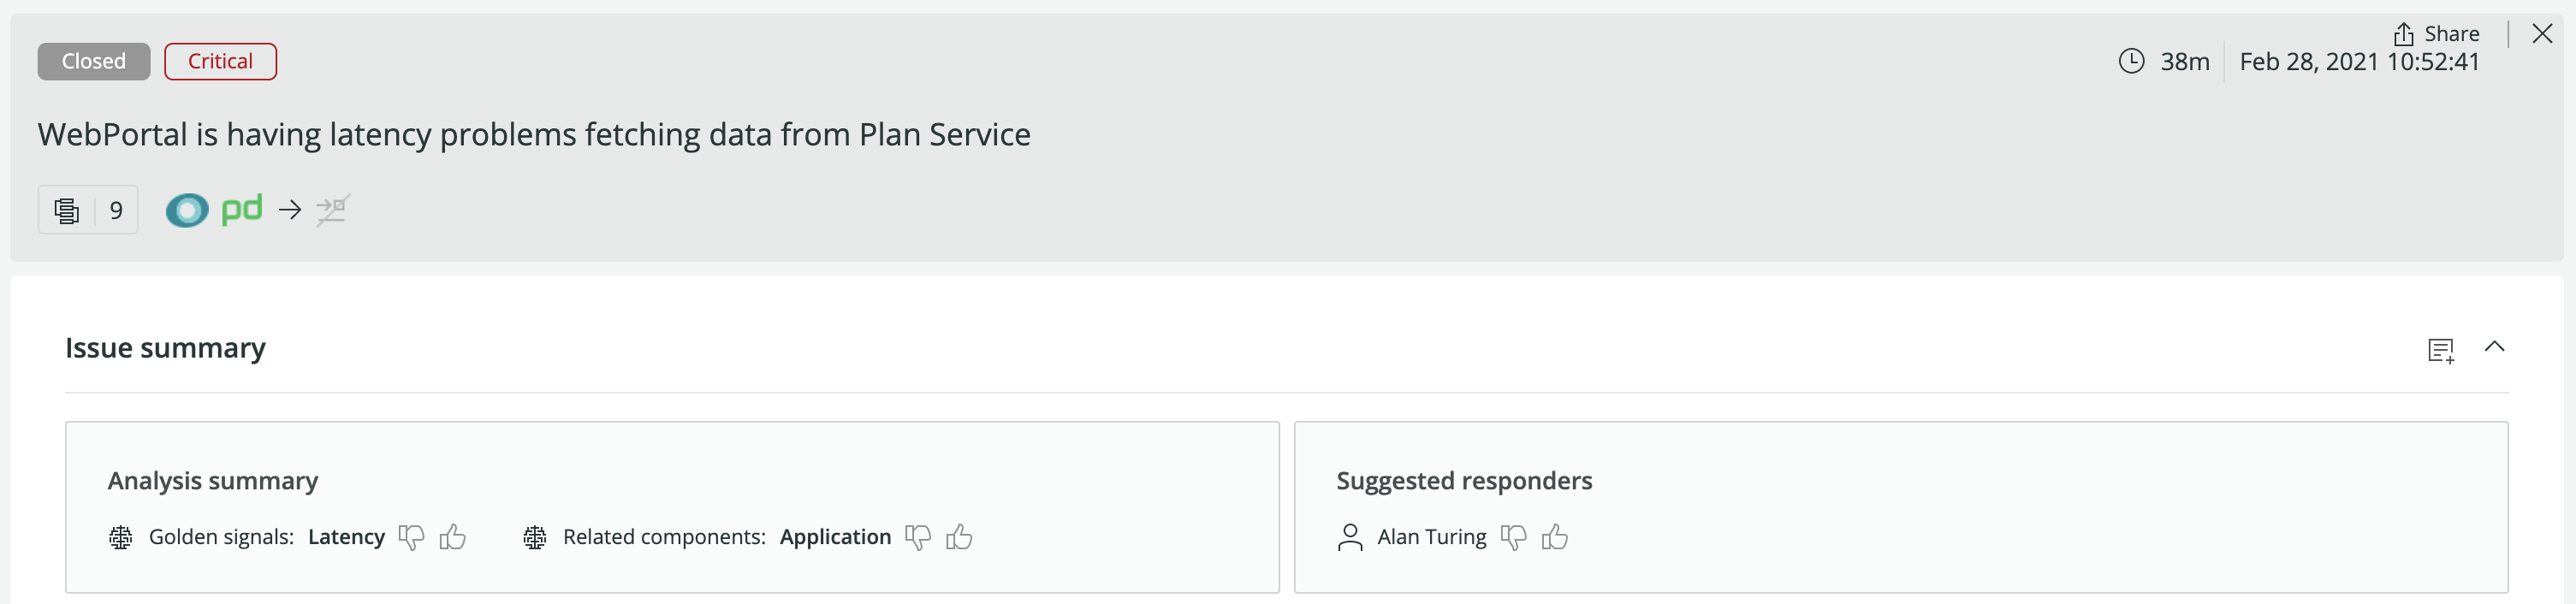 Suggested responders for New Relic Alert violations